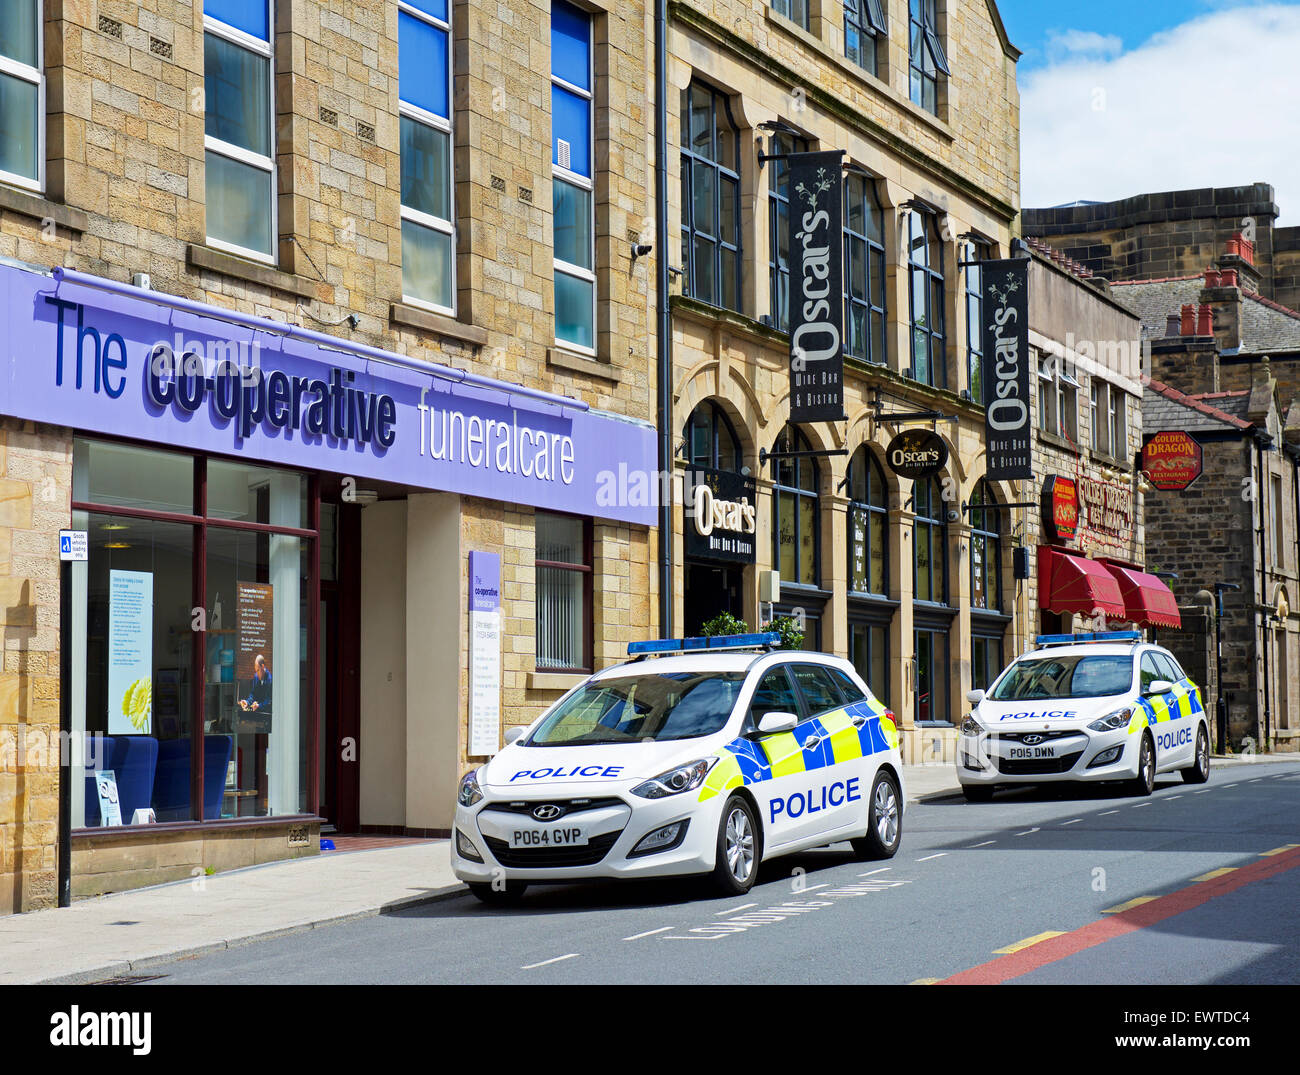 Co-Operative Funeral Parlour, and two parked police cars, in Lancaster, Lancashire, England UK - Stock Image